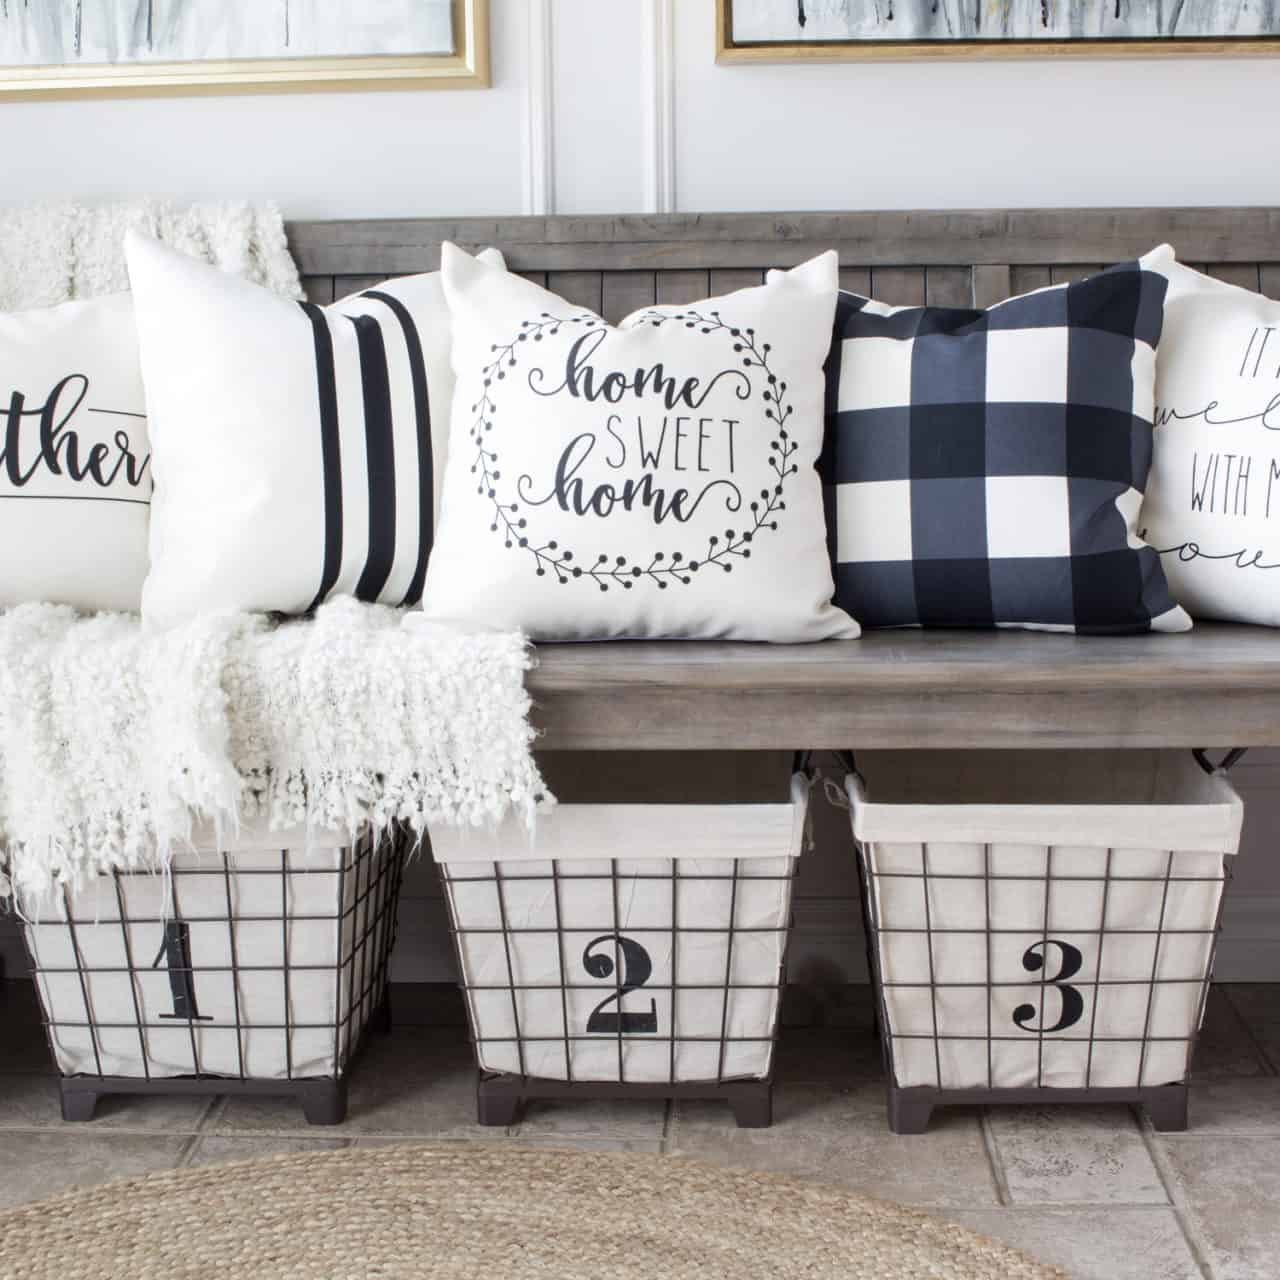 6 Wall Decor Finds Youll Love at First Sight—And They Cost as Little as 19 photo